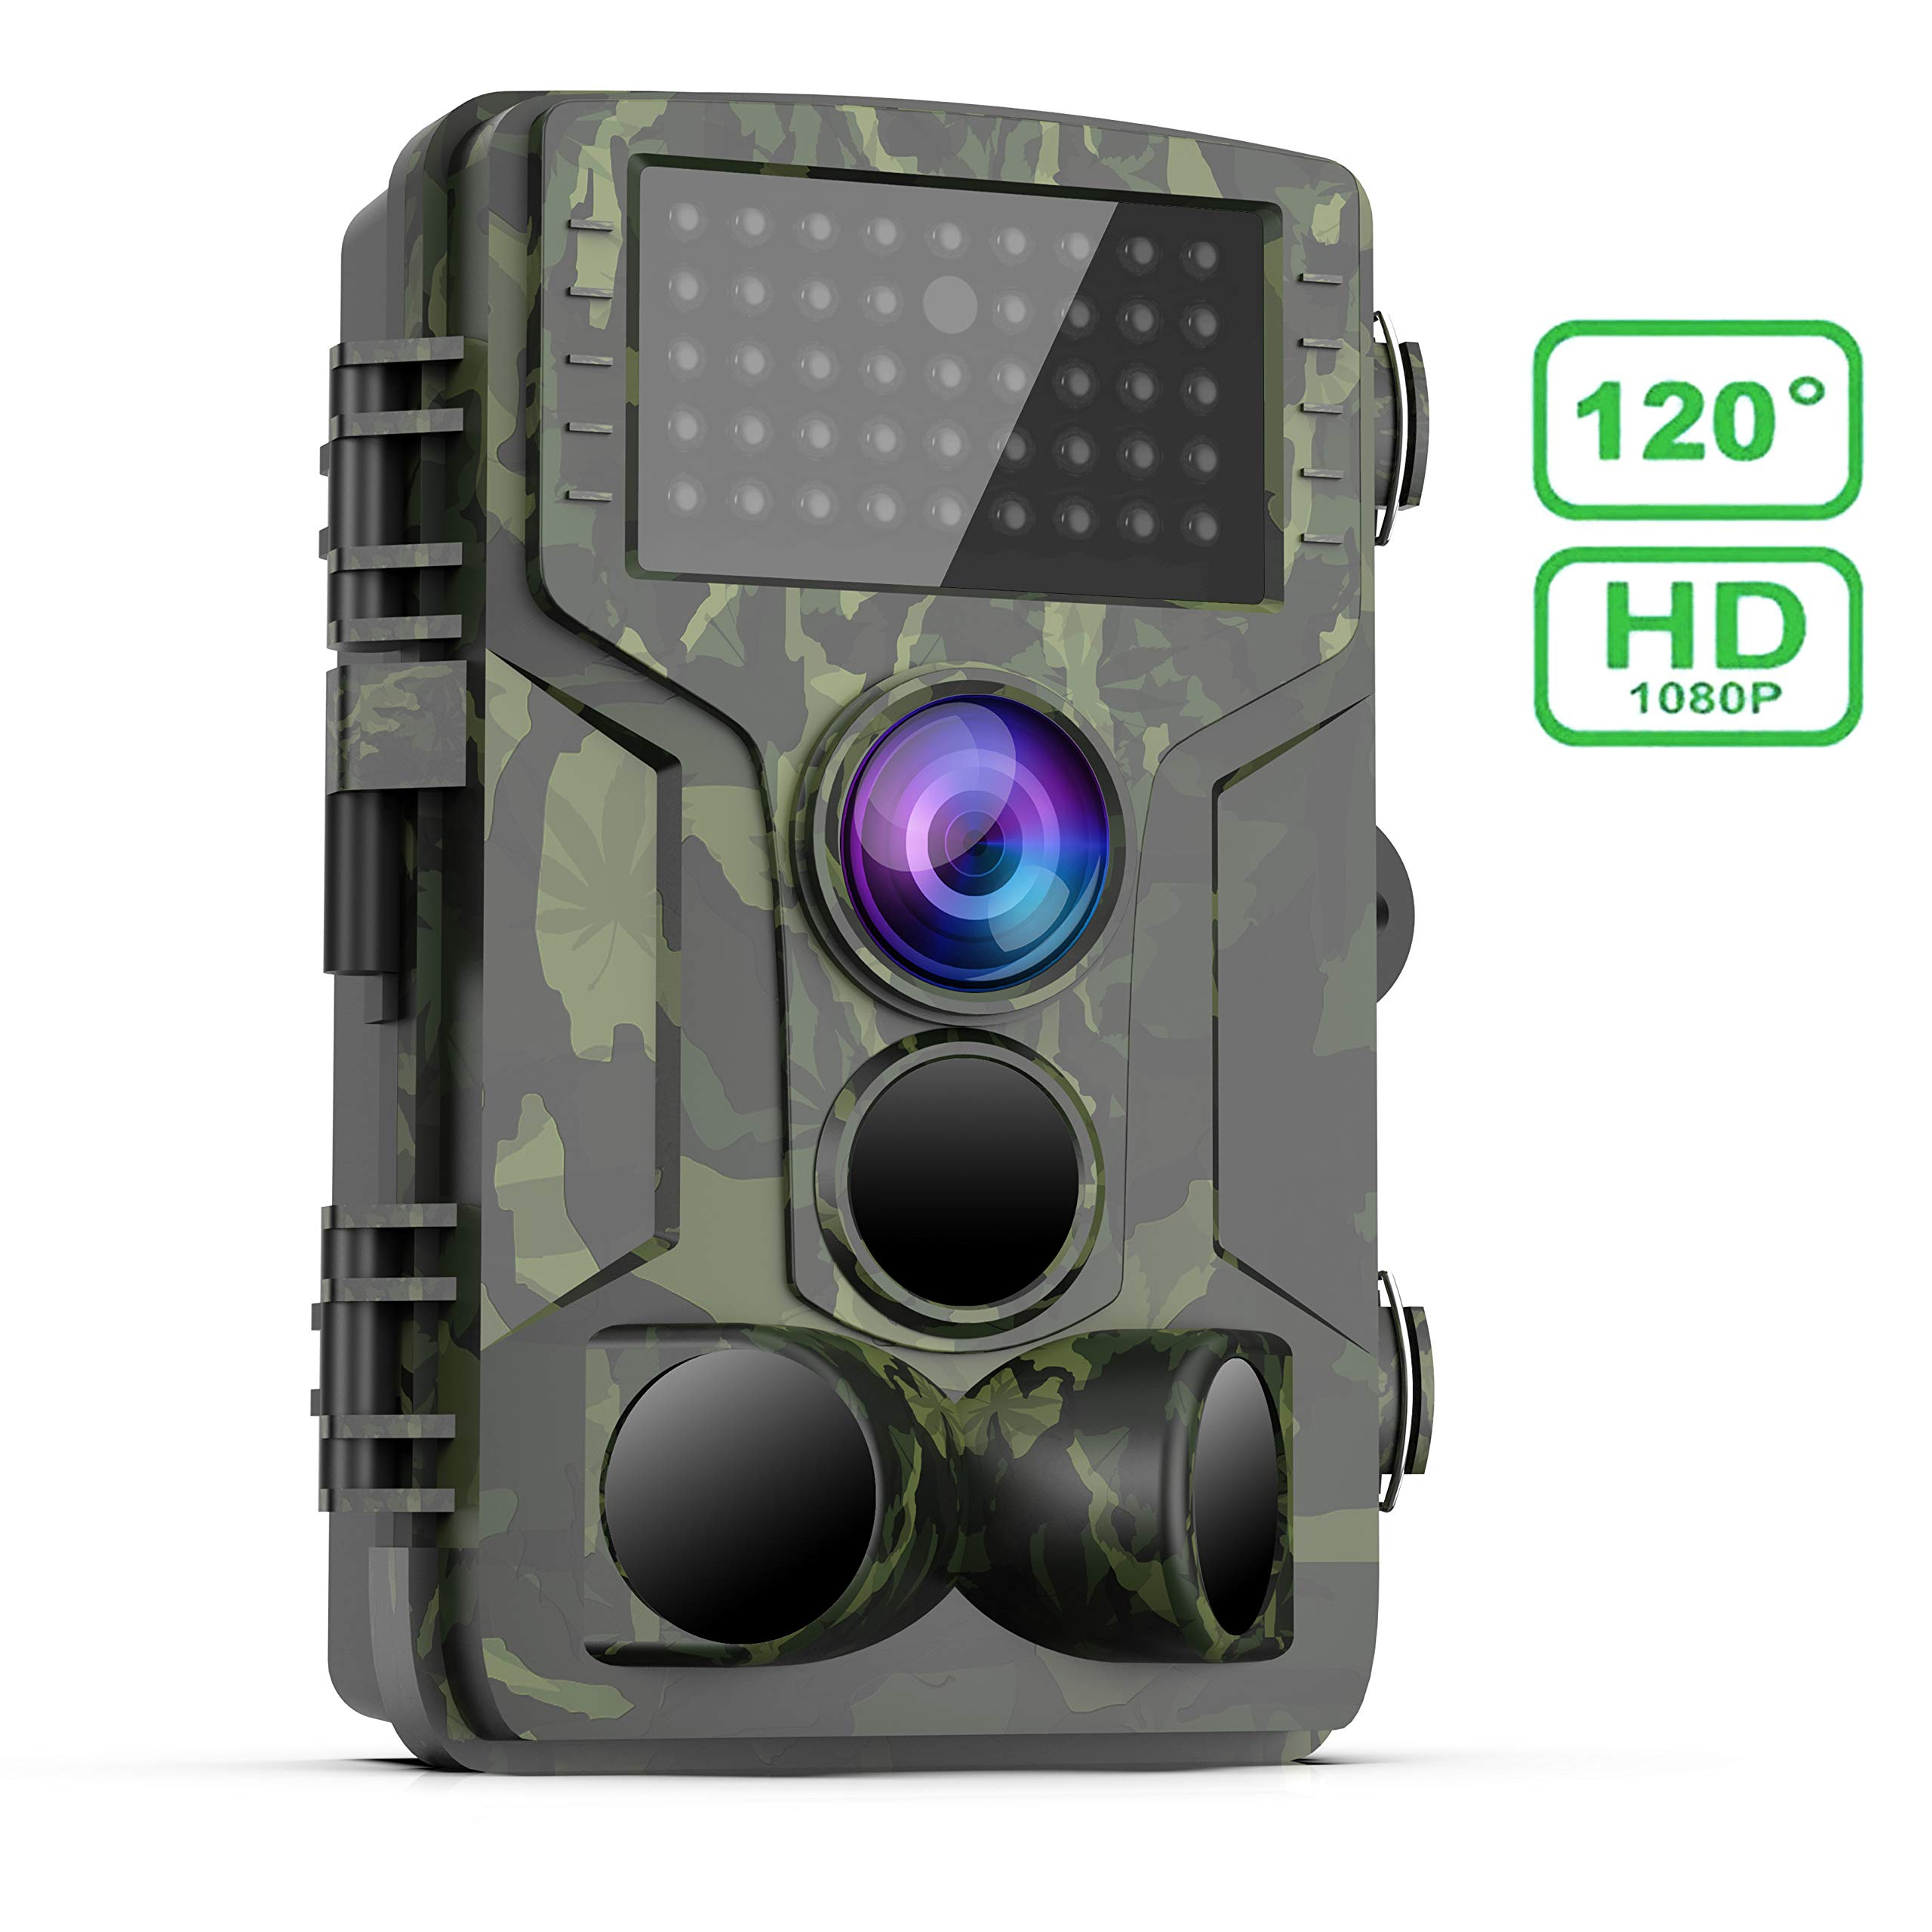 FHDCAM Trail Game Camera 1080P HD Waterproof Scouting Camera, 120°Wide Angle PIR Sensor Motion Activated Night Vision Hunting Camera for Wildlife & Home - New Version by FHDCAM